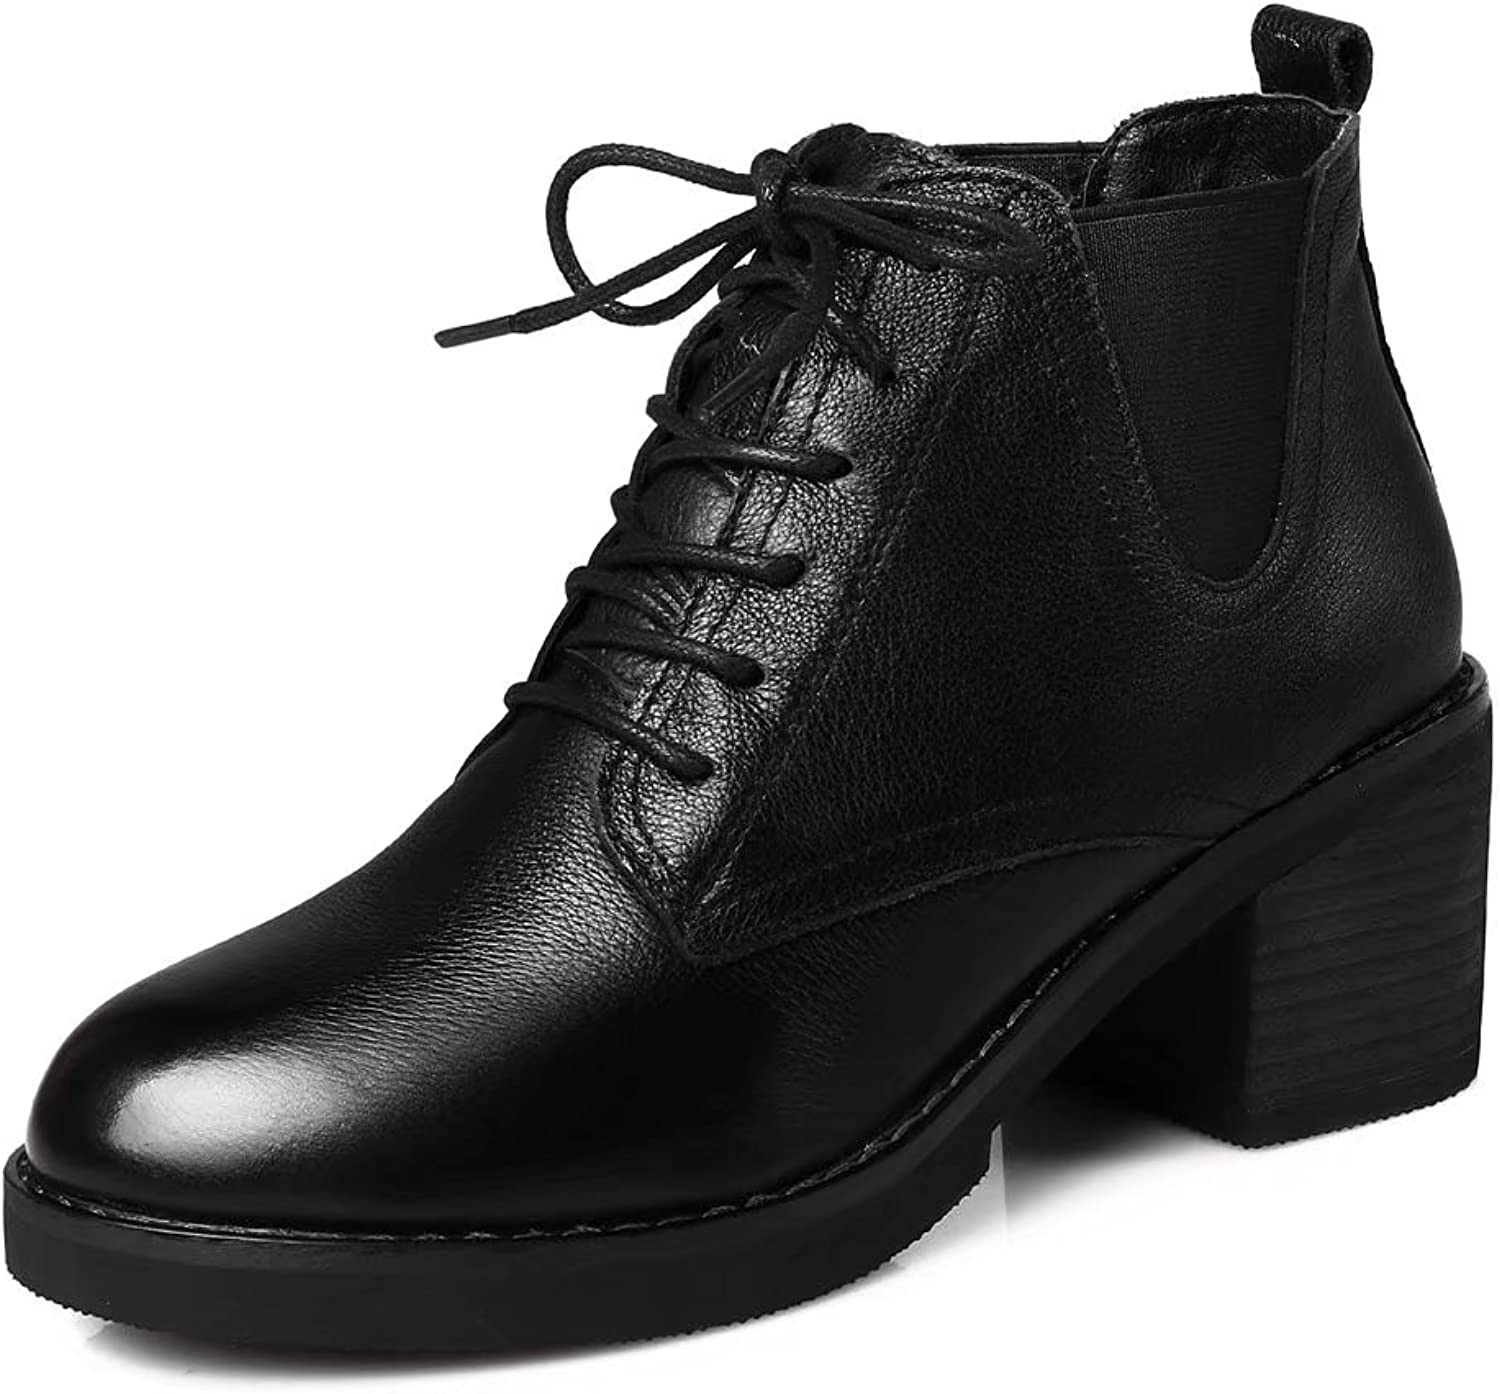 VIMISAOI Women's Genuine Leather Chunky Heel Lace up Round Toe Chelsea shoes Ankle Boots